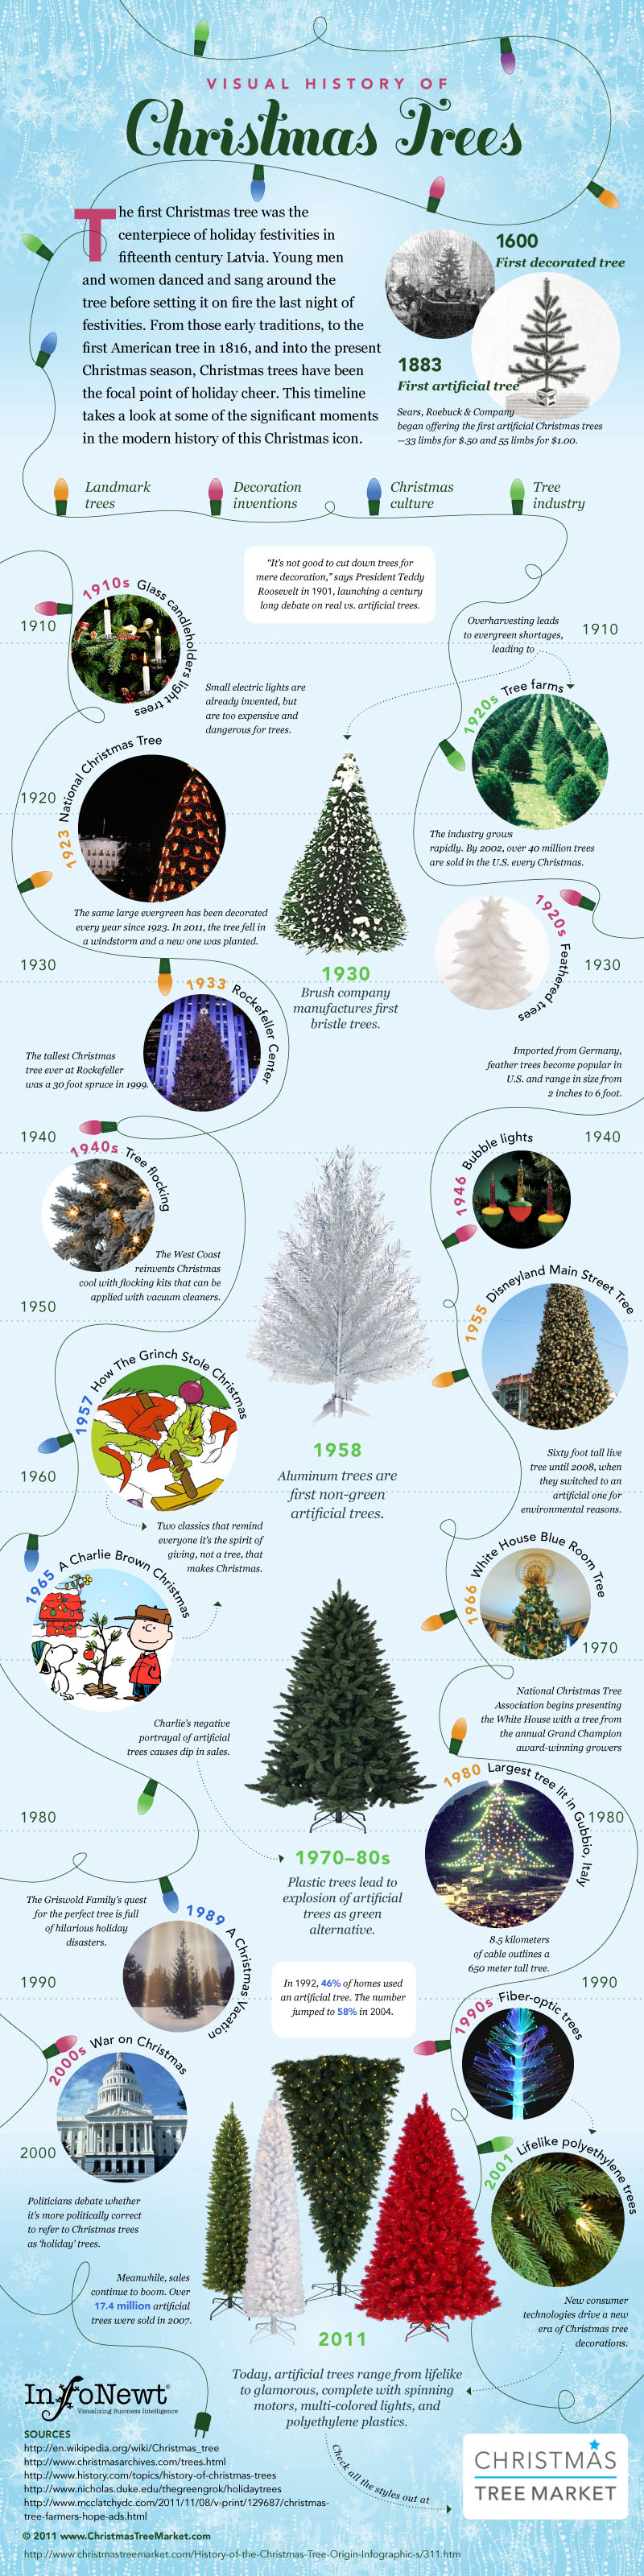 Visual History of the Christmas Tree